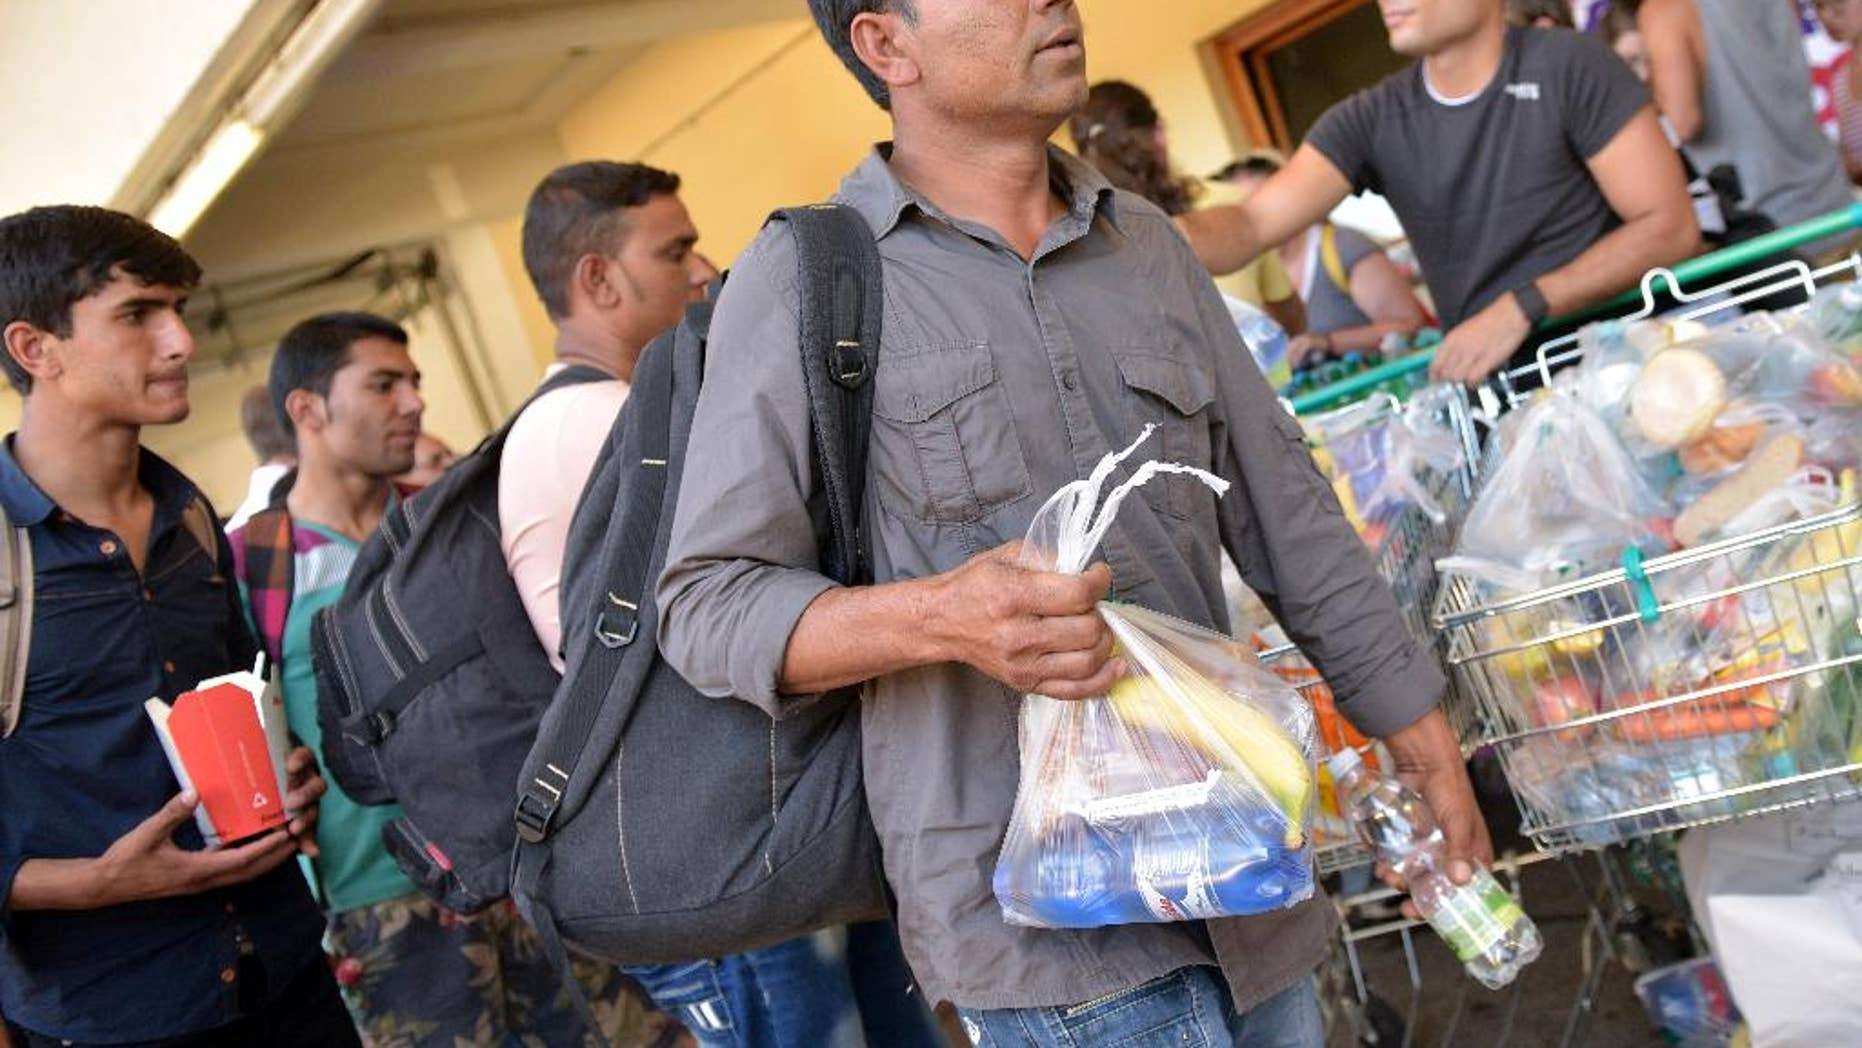 People receive food after they arrived at the Western railway station in Vienna, Austria, on Tuesday, Sept. 1, 2015. Some hundreds of migrants arrived by train from southern Europe, after making a perilous journey into Europe. (AP Photo/Hans Punz)